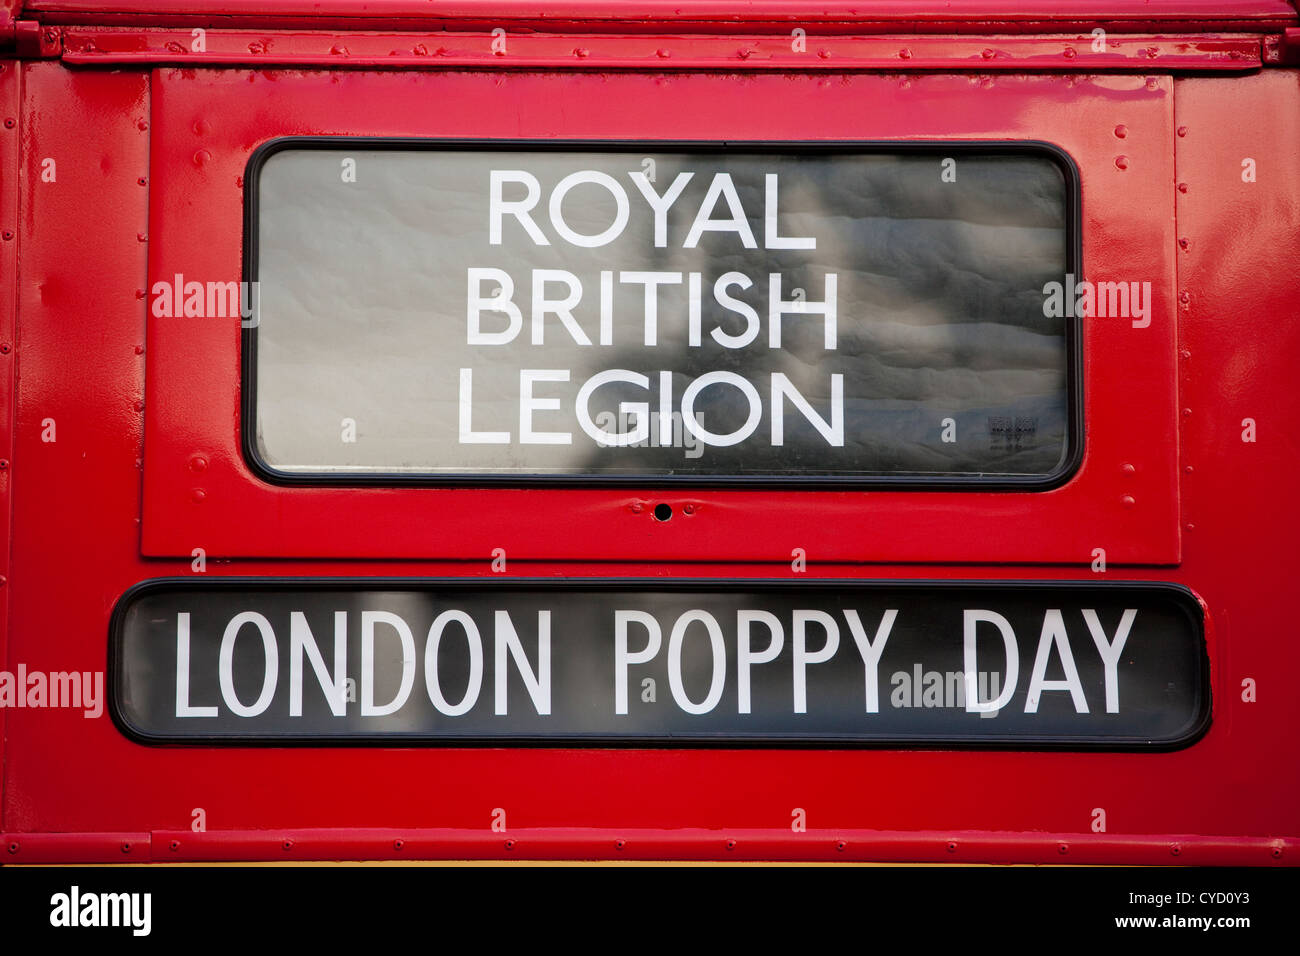 Royal British Legion London Poppy Day Poppy Appeal, Advertised on a London Routemaster Bus window, London, United - Stock Image